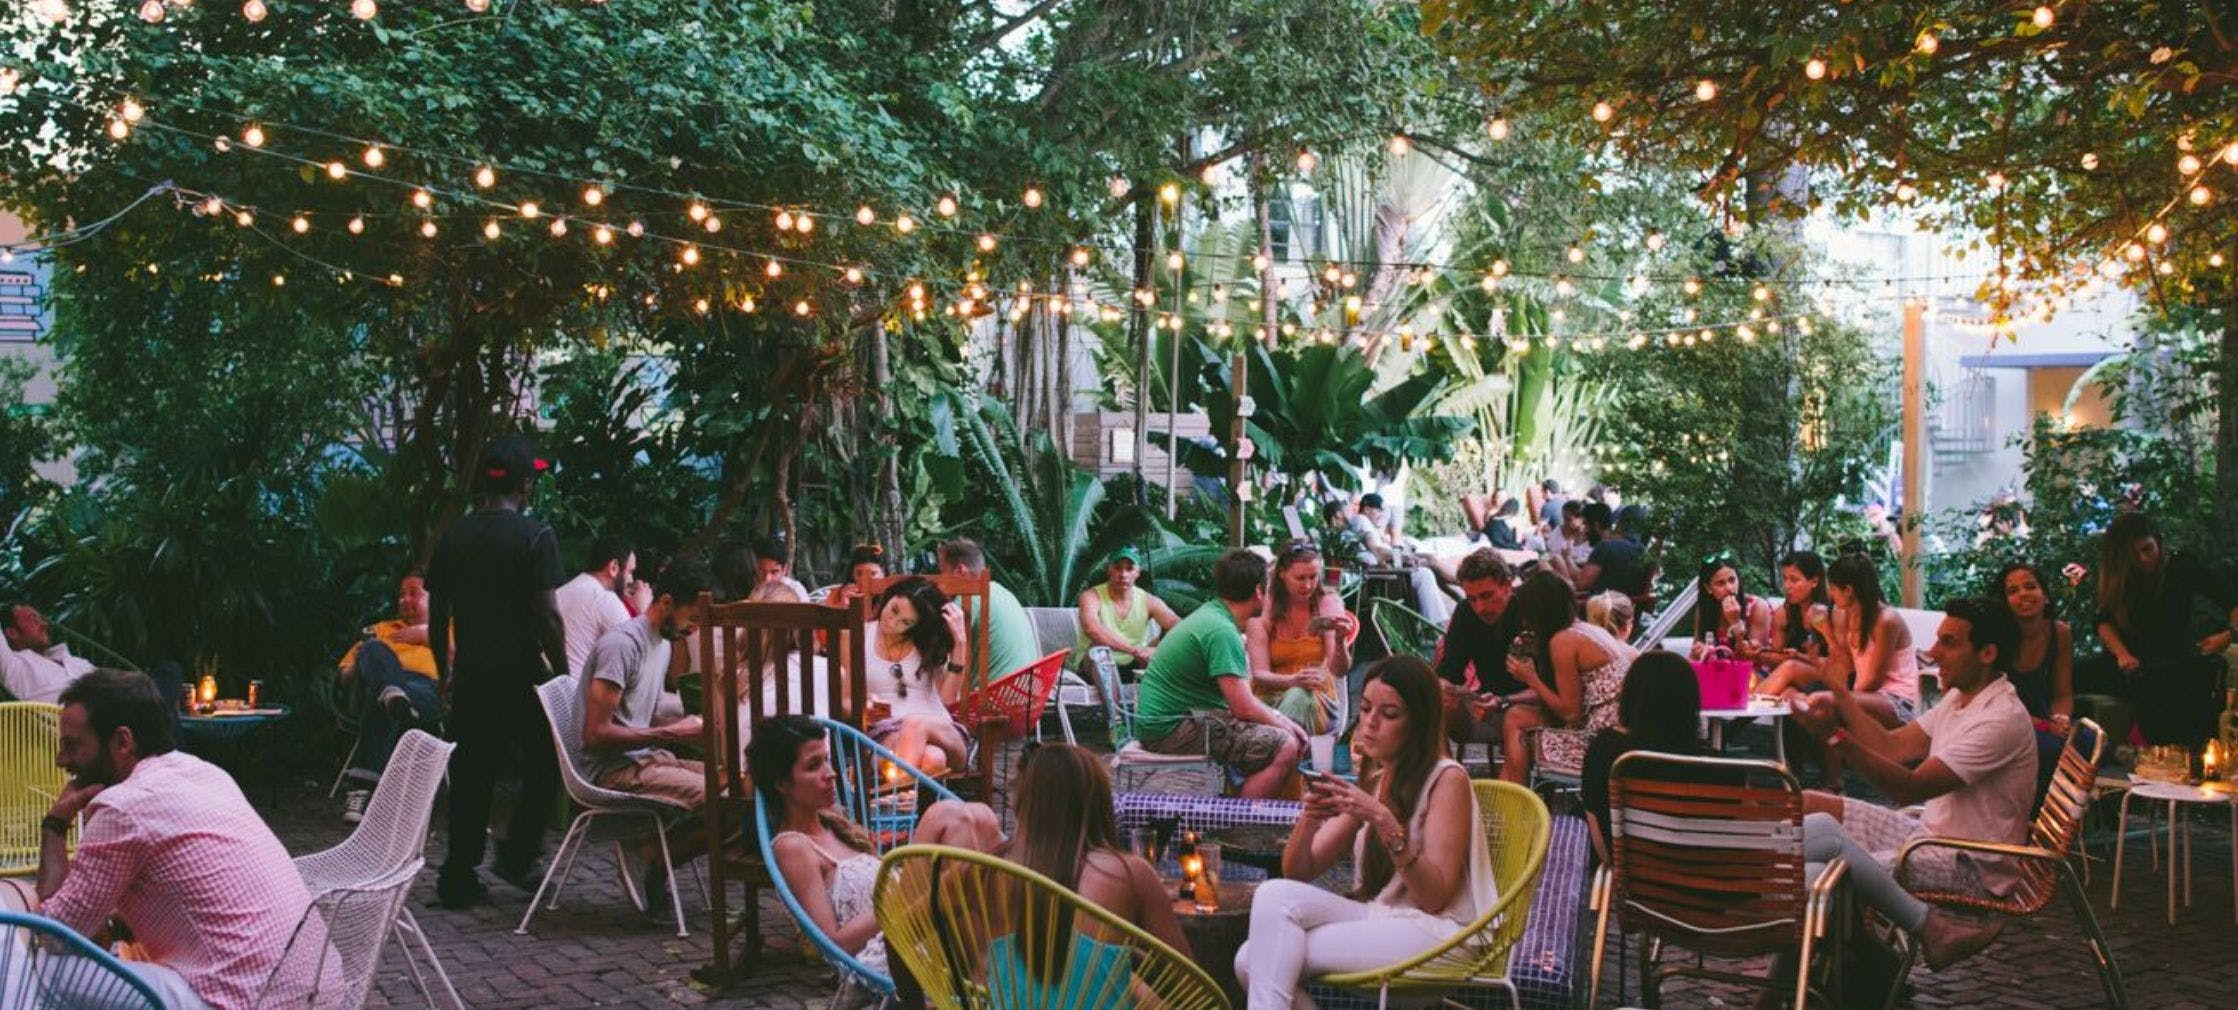 Freehand Miami drinks in the garden